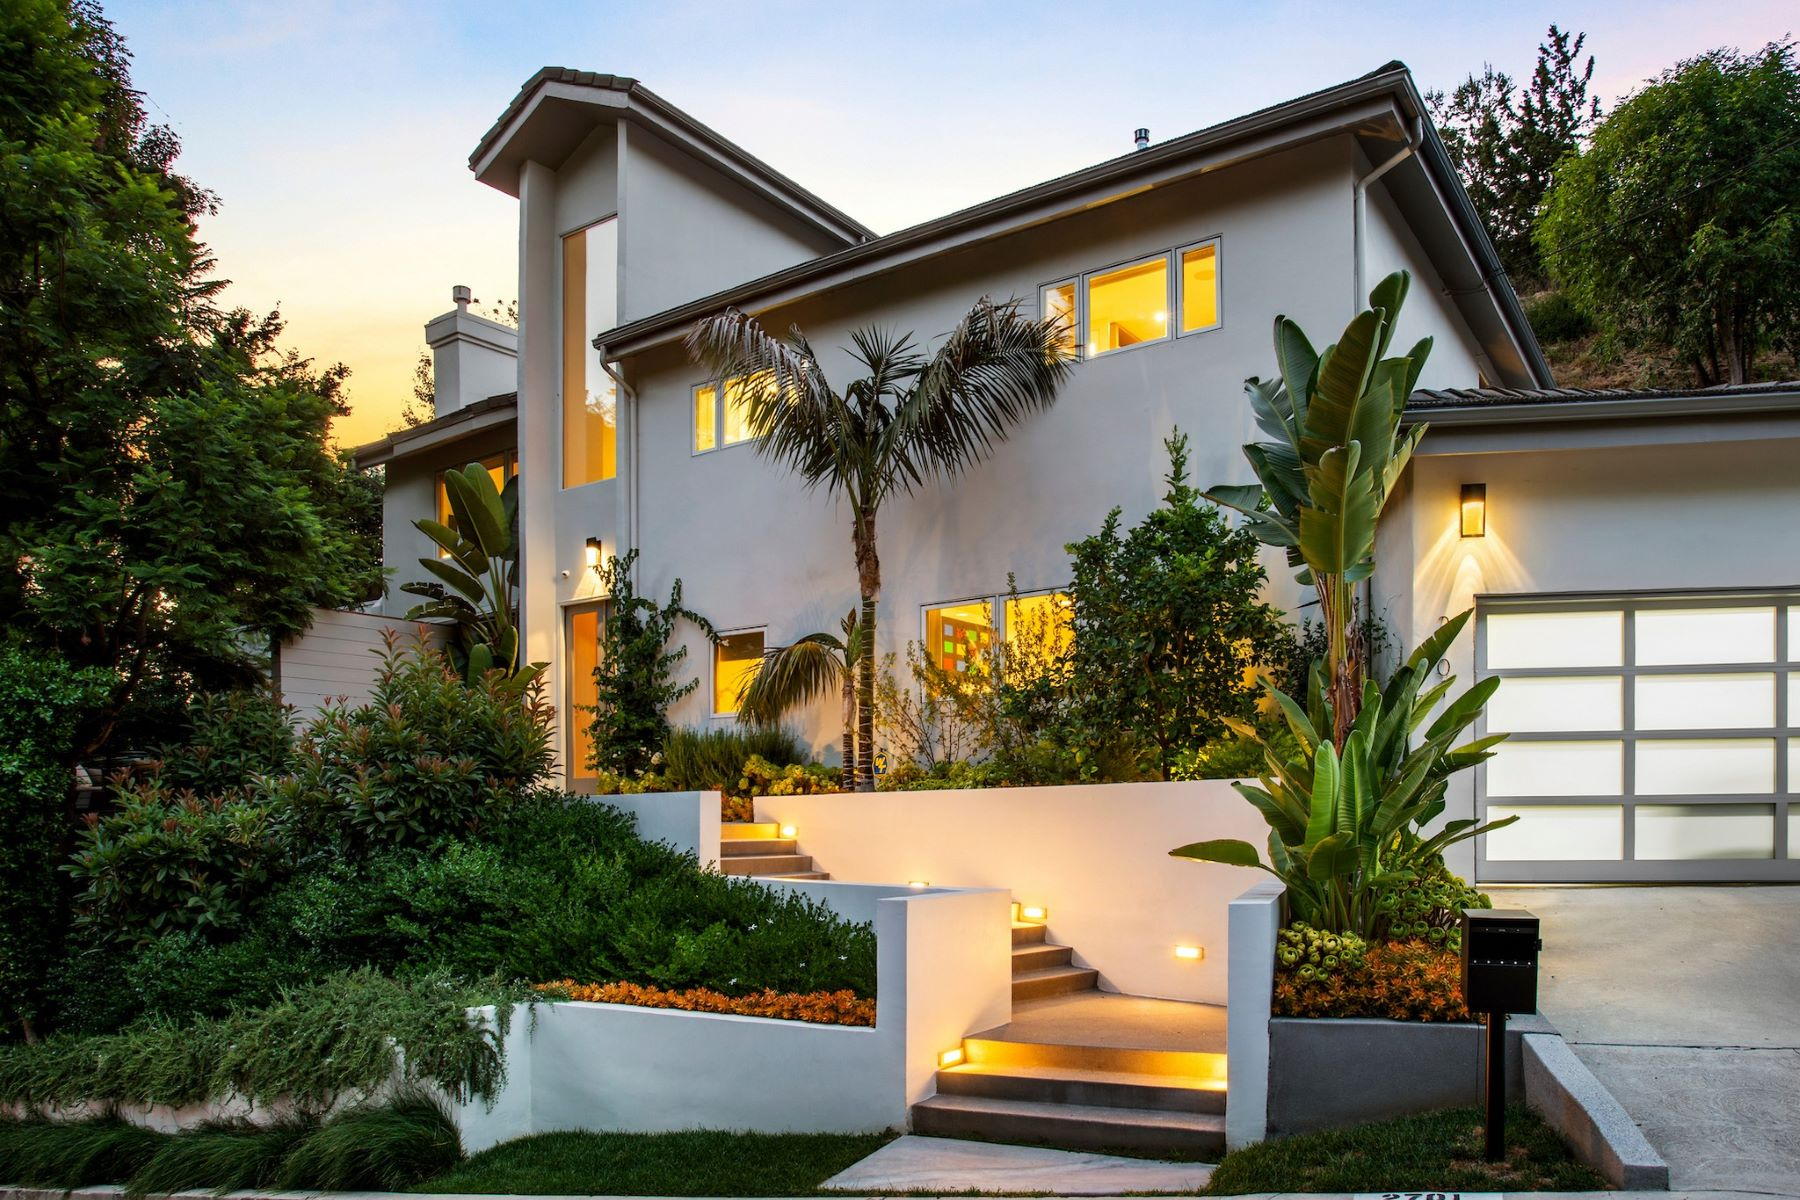 Single Family Homes for Sale at 2701 Ellison Drive Beverly Hills, California 90210 United States